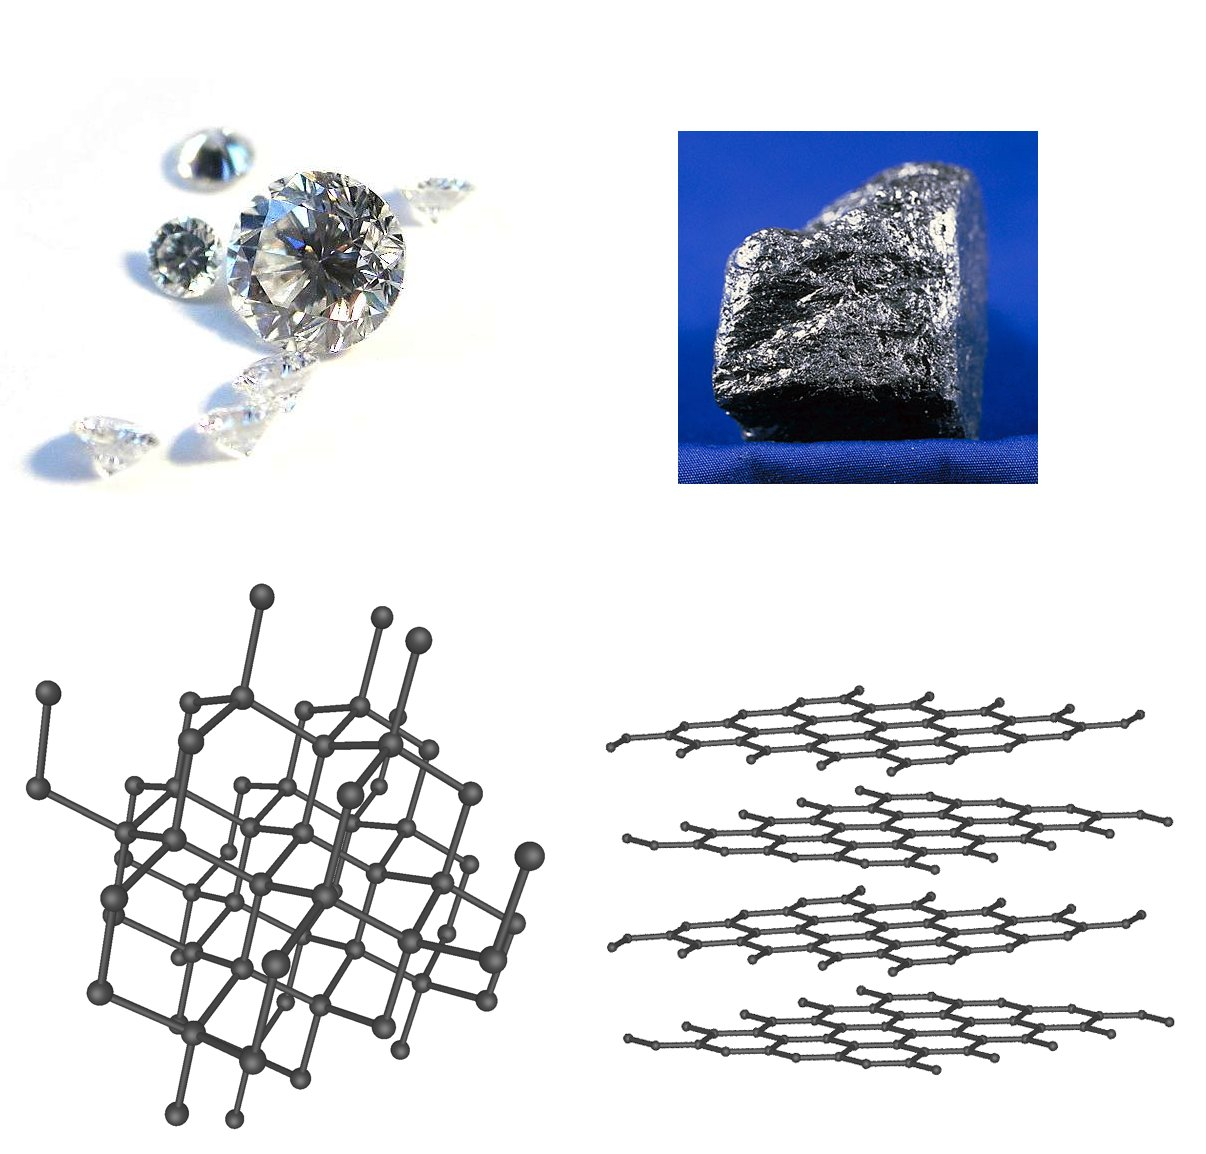 diamond and graphite (physorg)—researchers have finally answered a question that has eluded scientists for years: when exposed to moderately high pressures, why does graphite turn into hexagonal diamond (also called lonsdaleite) and not the.